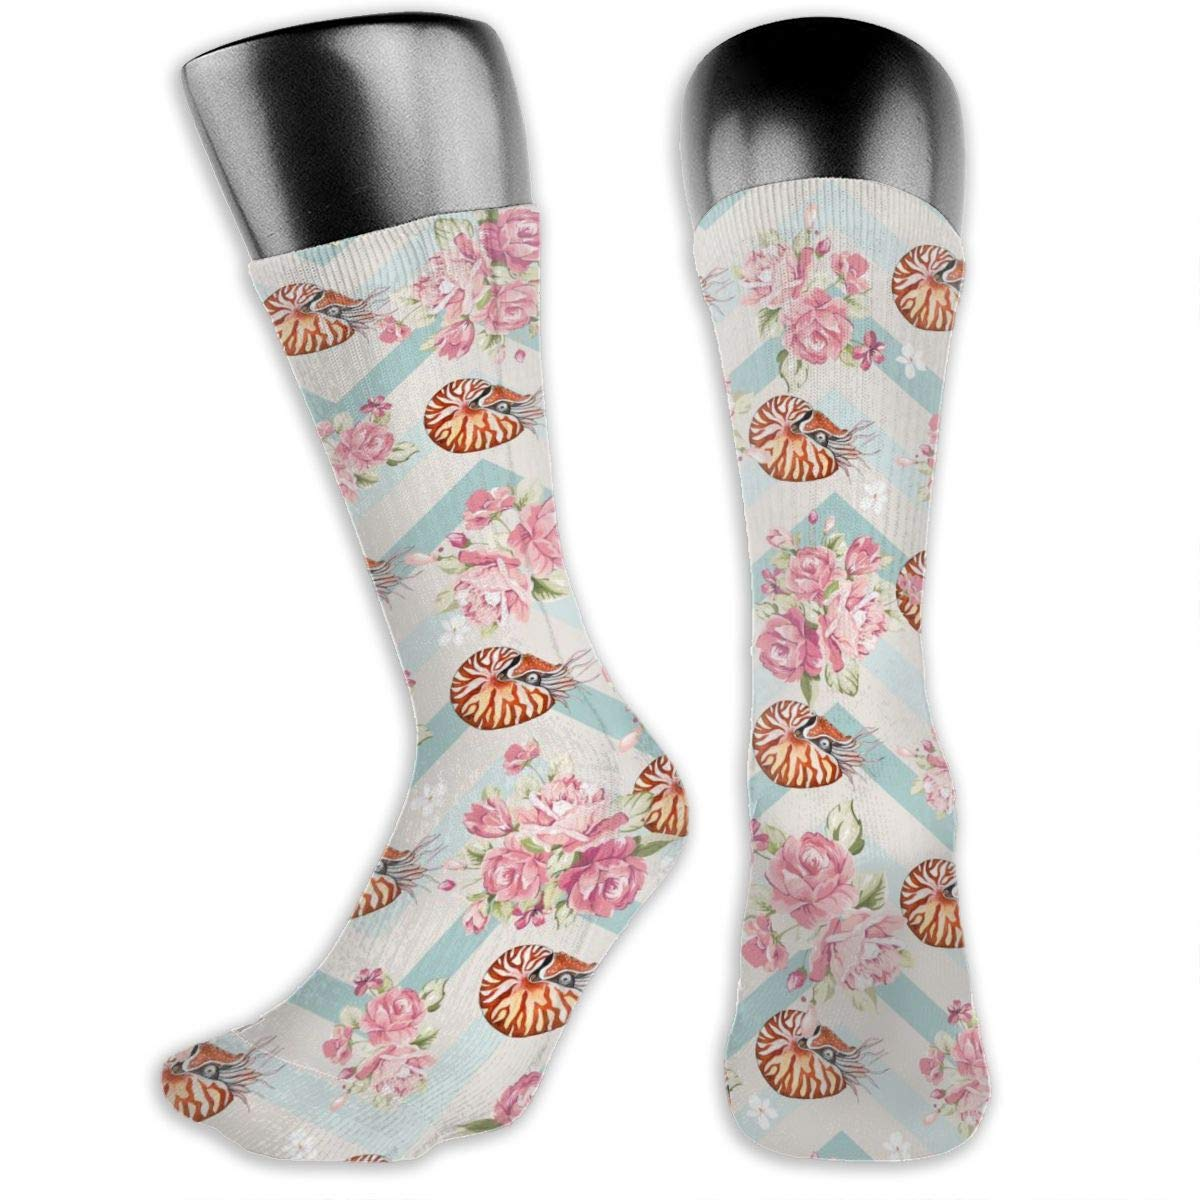 Personalized Nautilus Watercolour Dress Socks For Women Men